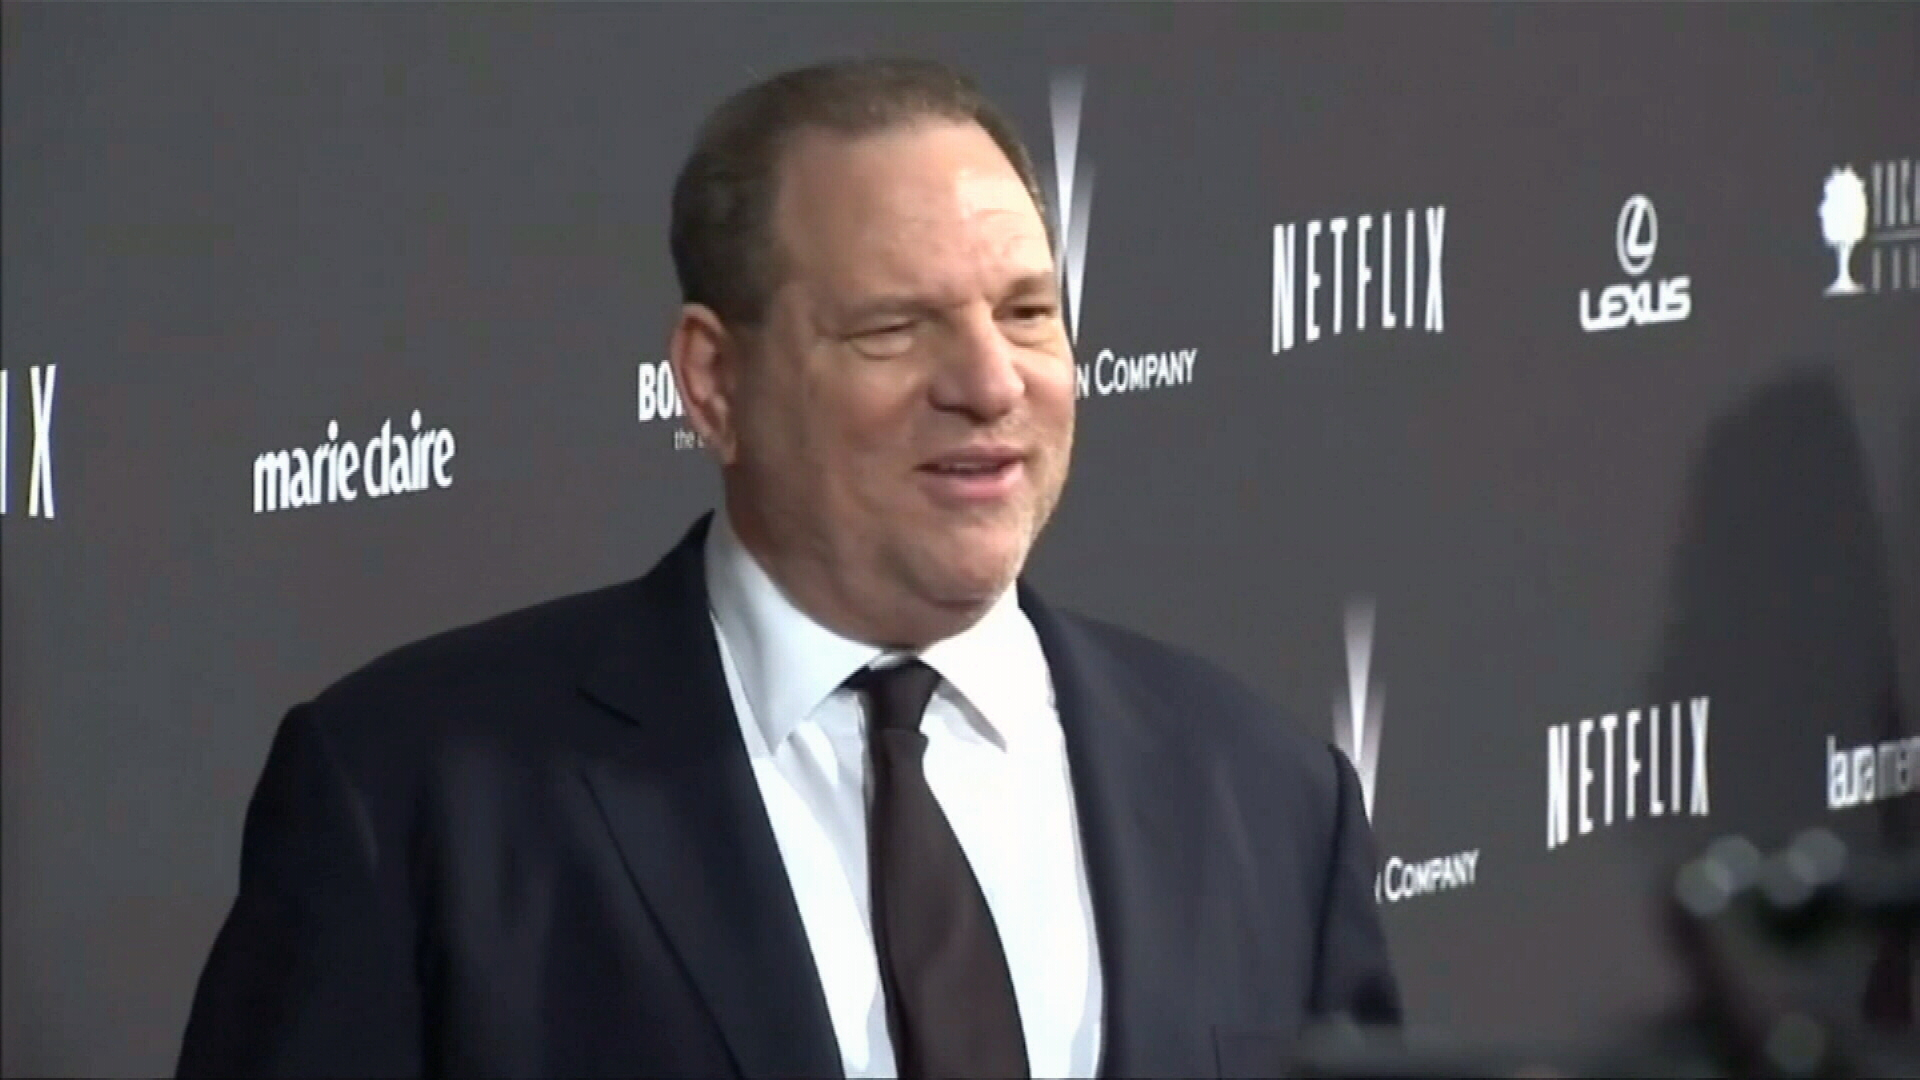 Harvey Weinstein to hand himself into police over sexual misconduct allegations